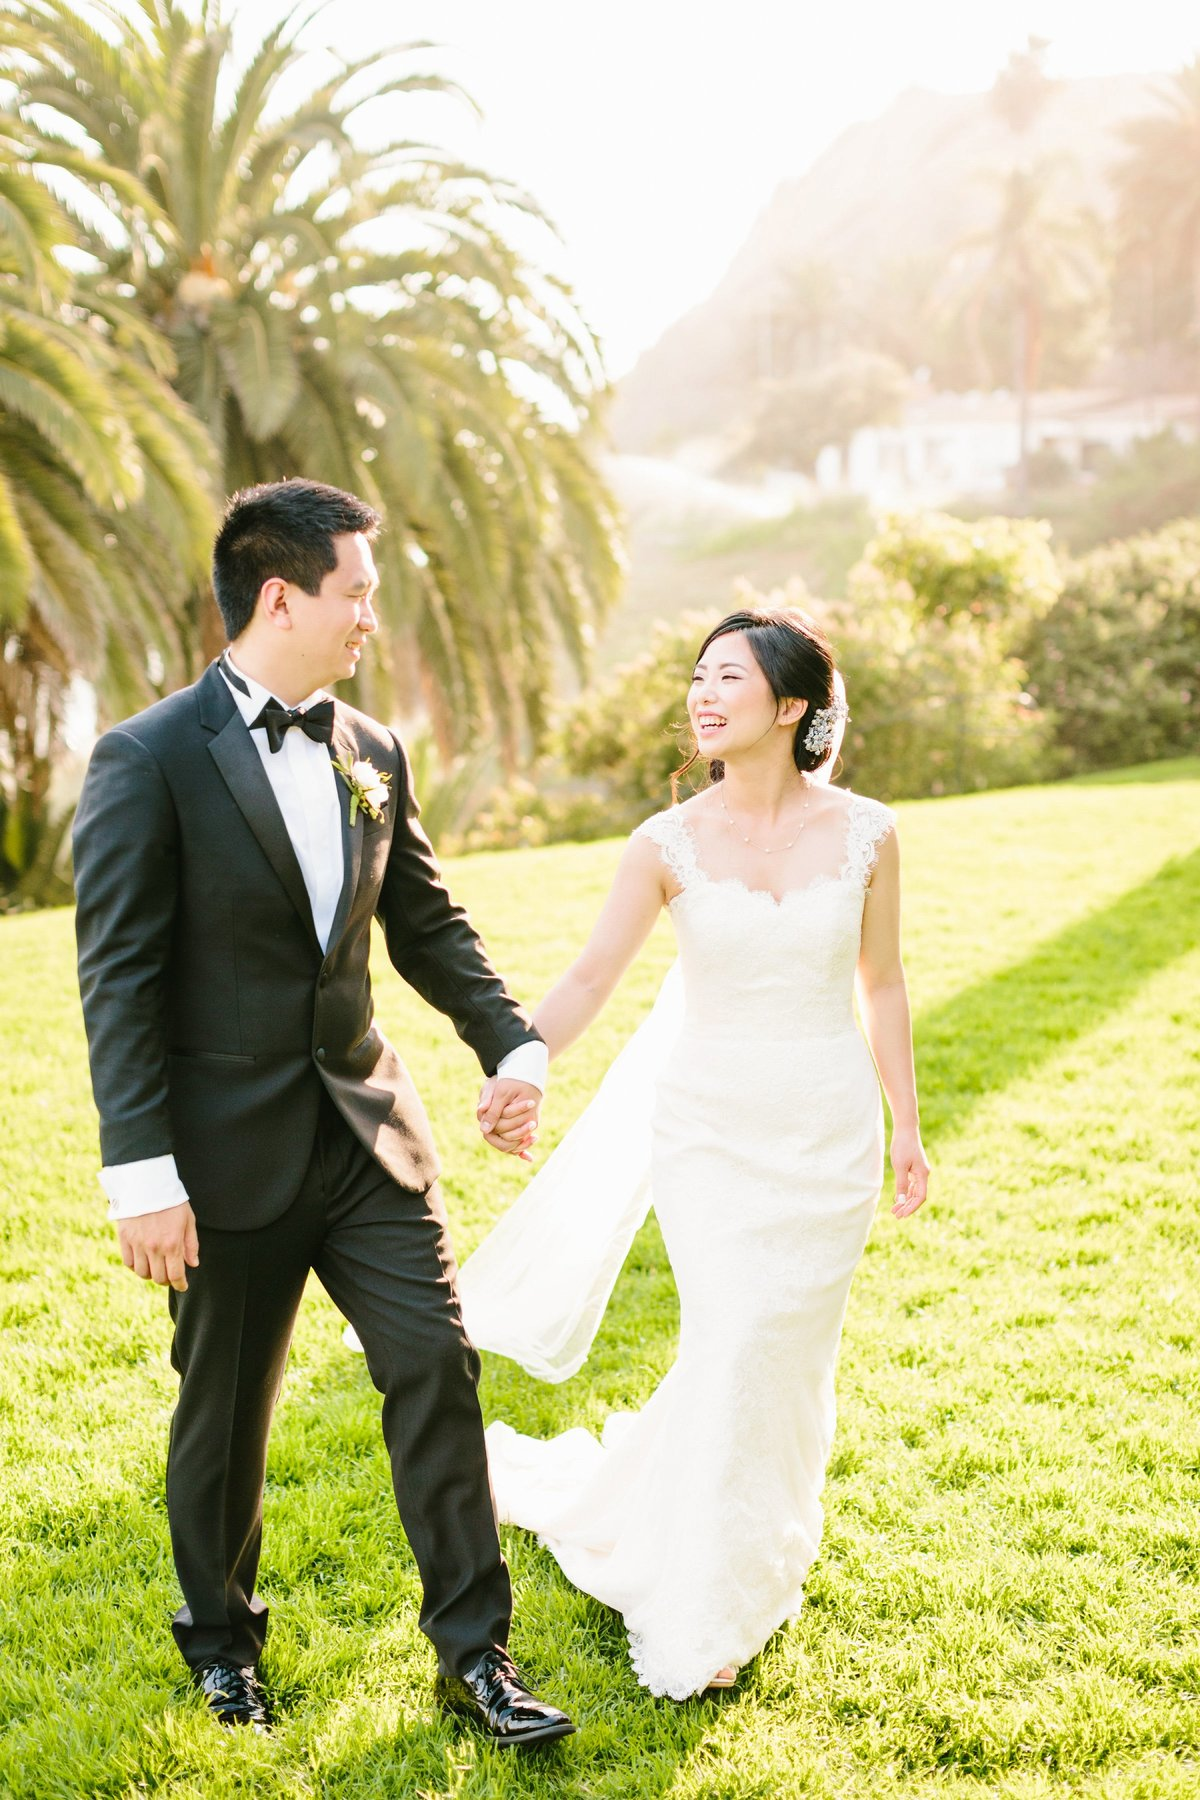 Best California Wedding Photographer-Jodee Debes Photography-117